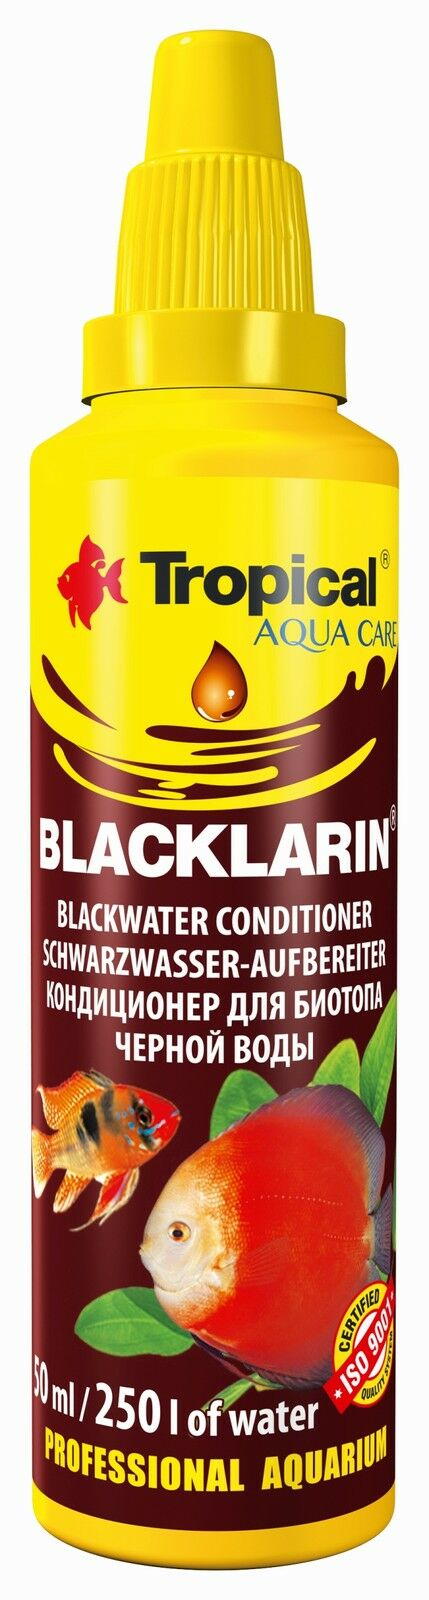 Blacklarin  With Peat Extract For Conditioning Black Tap Water In Aquarium